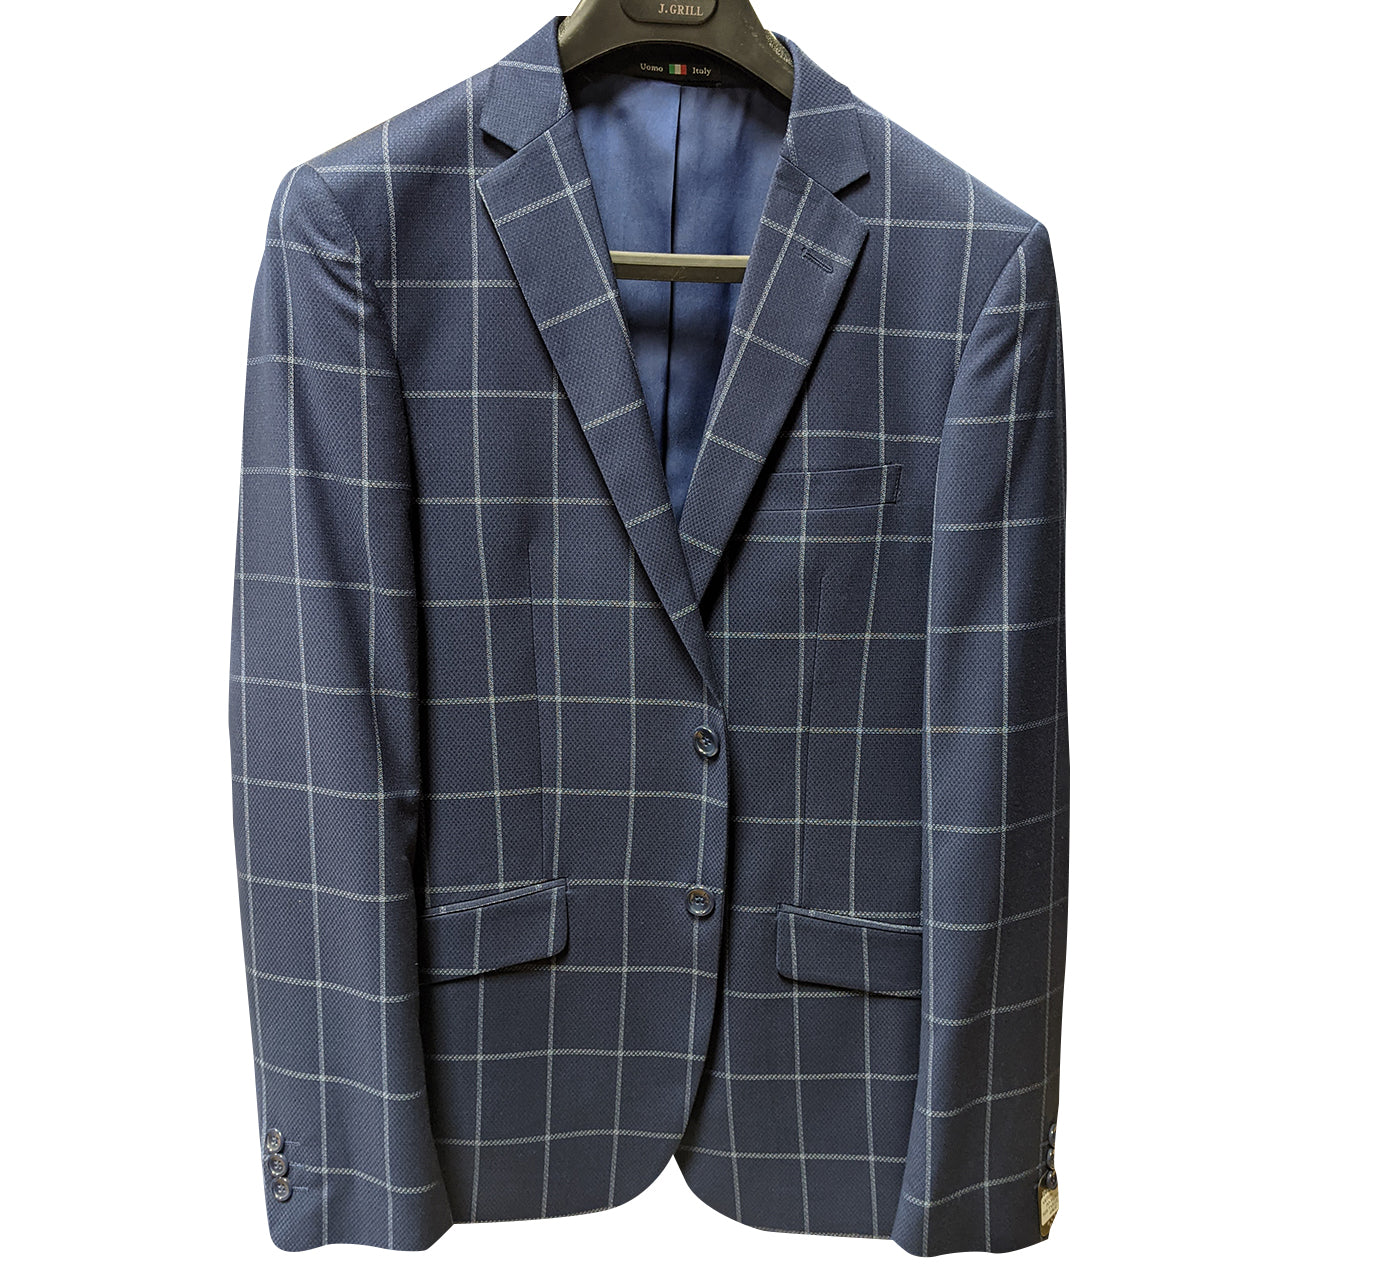 Windowpane print sport jacket